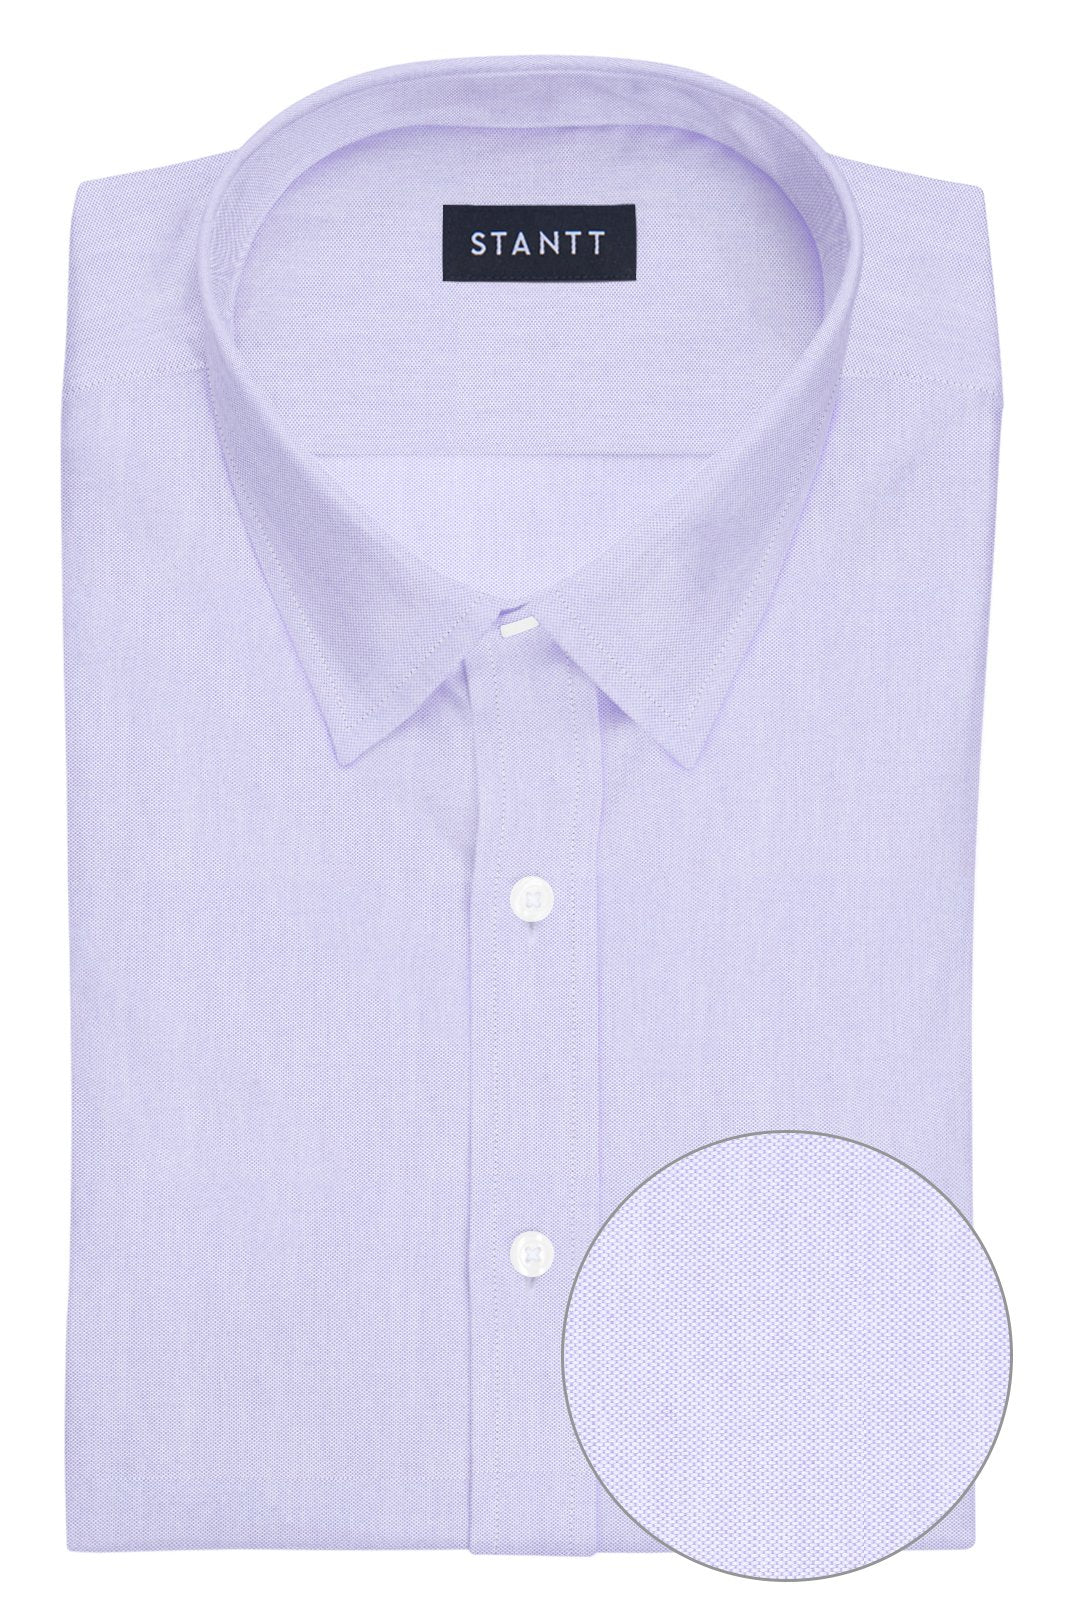 Lavender Pinpoint Oxford: Semi-Spread Collar, French Cuff